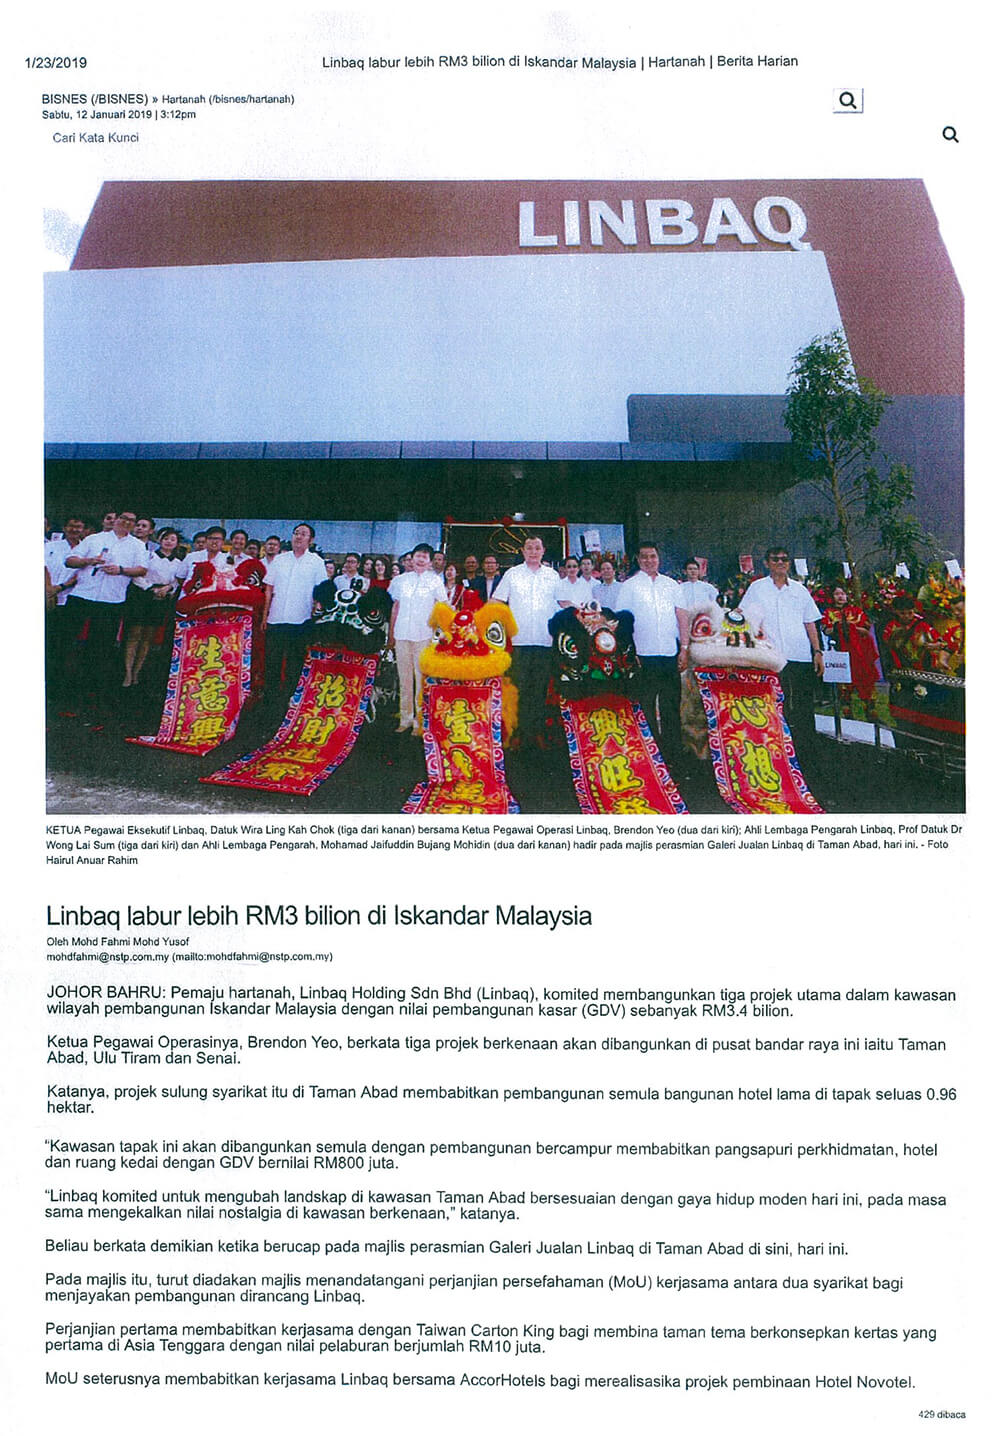 LINBAQ invests more than RM3 billion in Iskandar Malaysia image